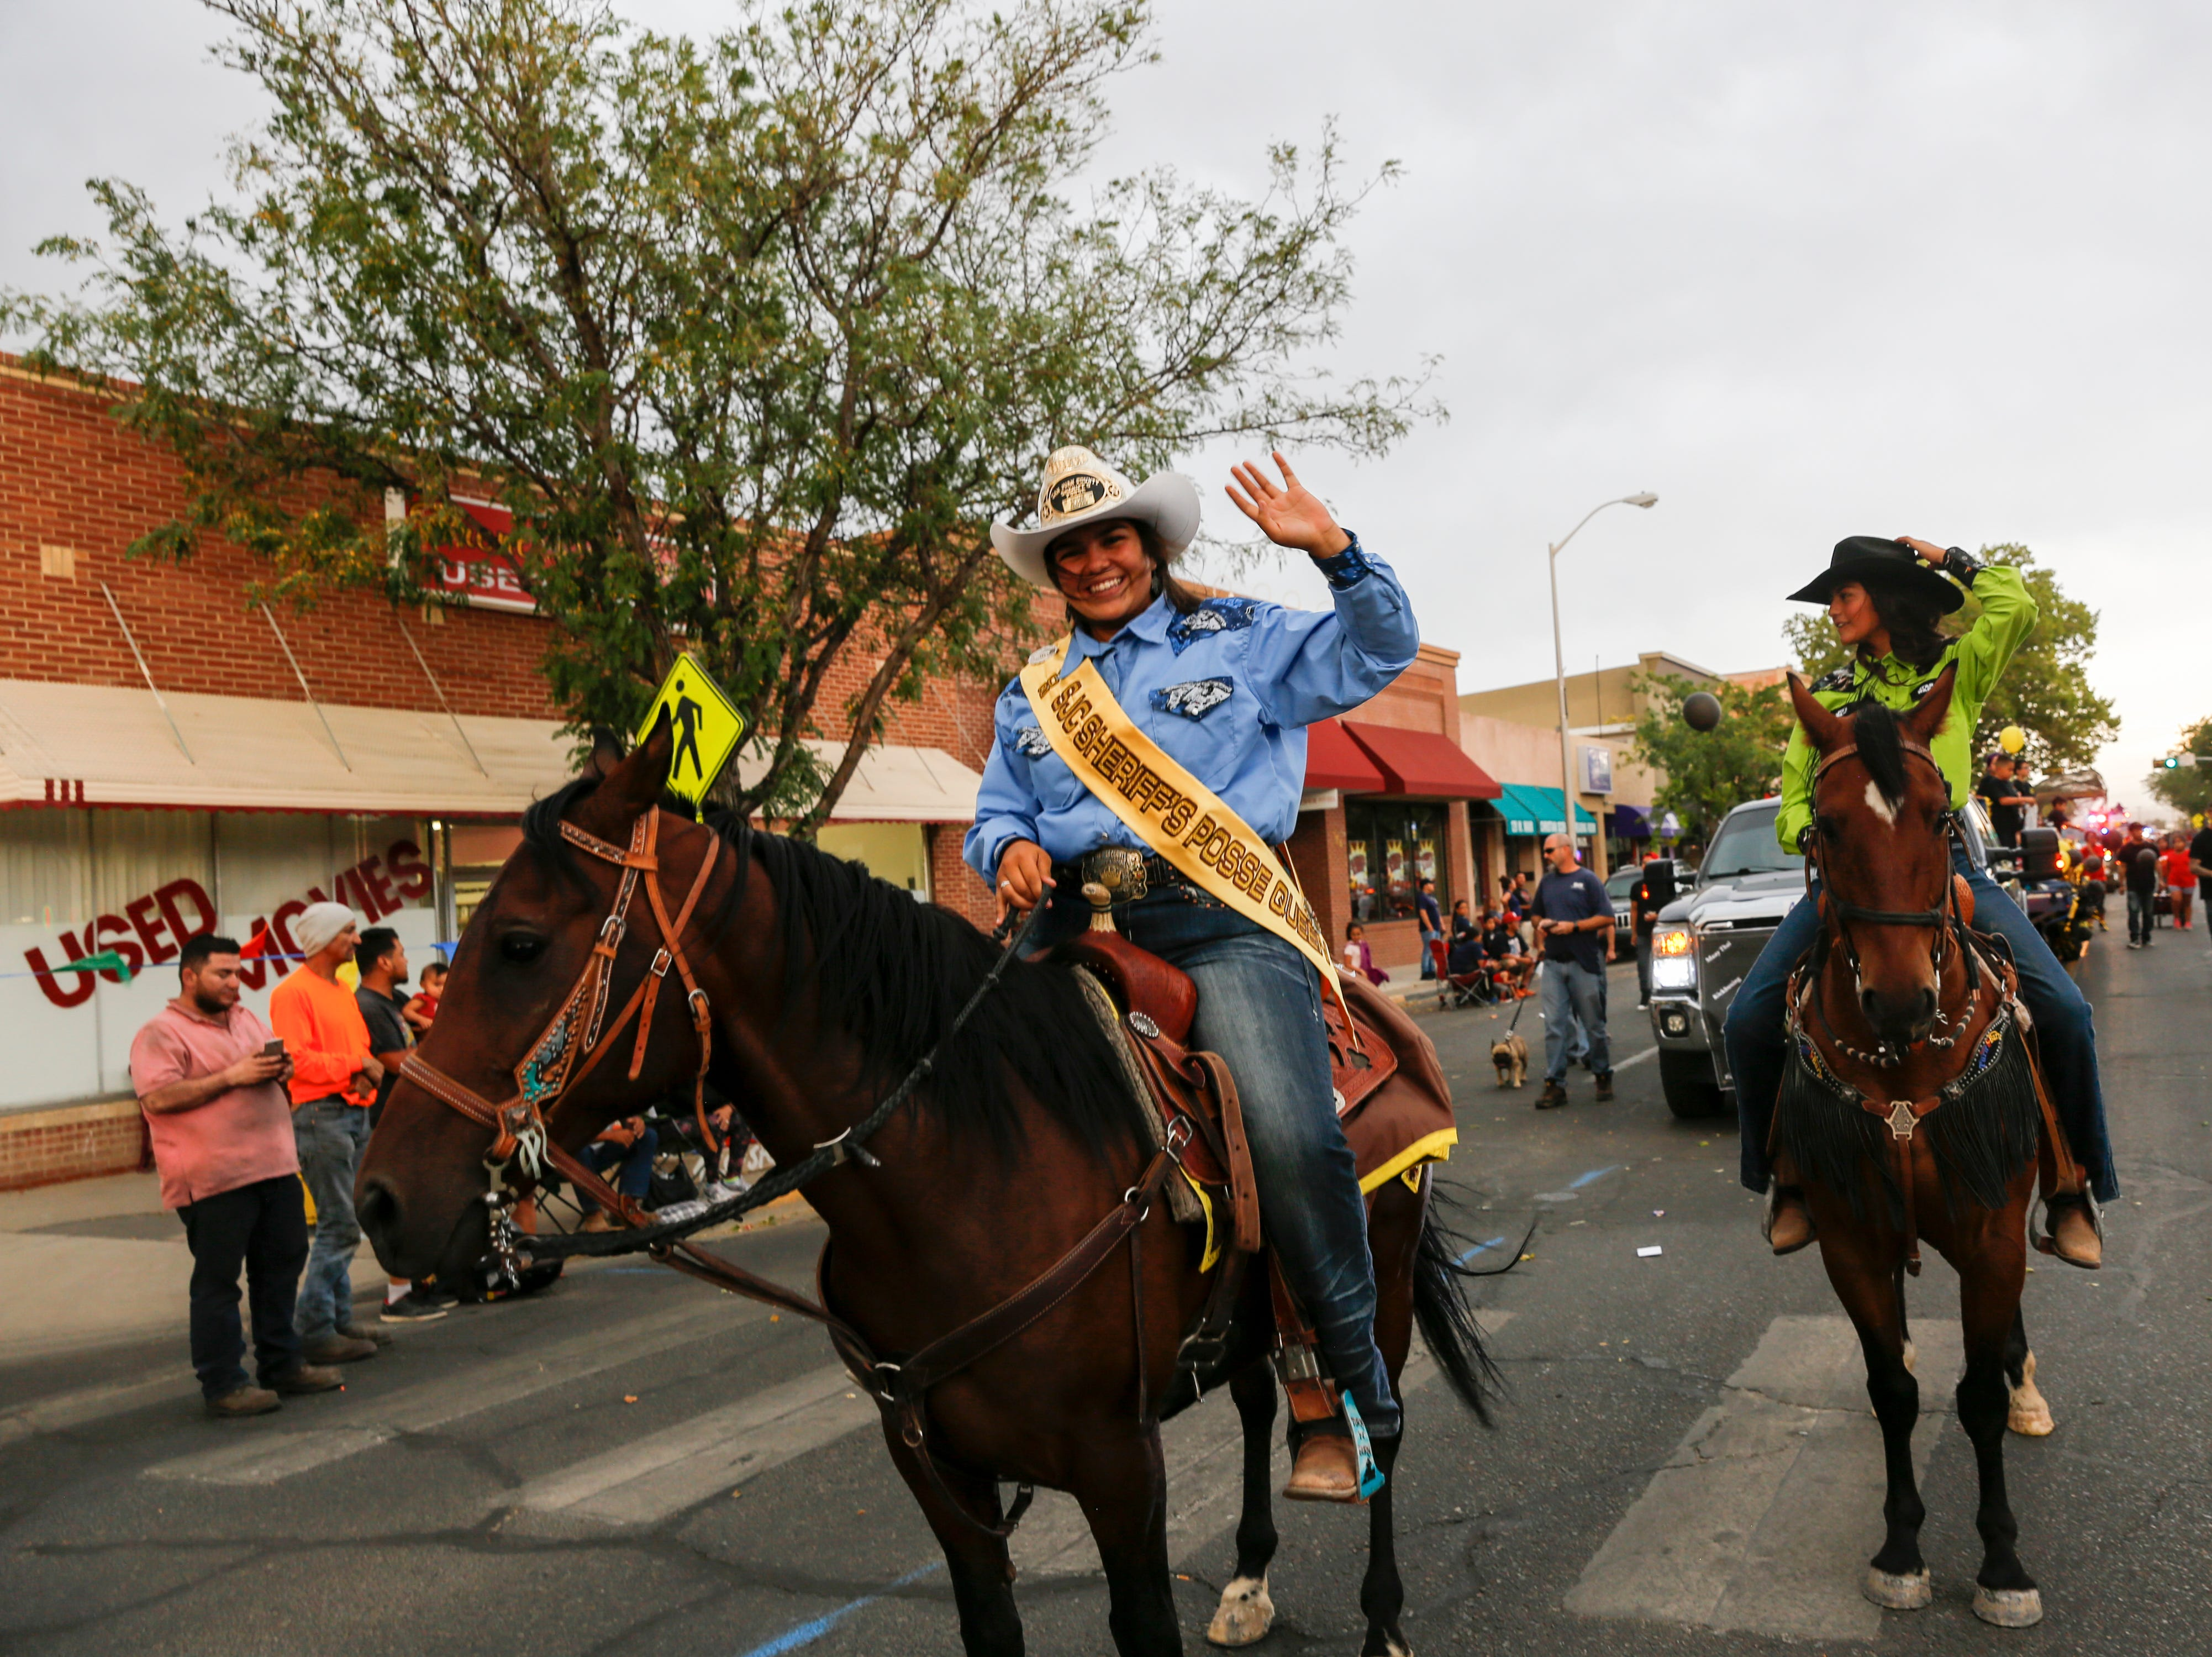 San Juan County Sheriff's Posse Queen Nevaeh Chapman, left, and her sister Sariah Chapman participate, Friday, Aug. 10, 2018 in the San Juan County Fair Parade on Main Street in Farmington.